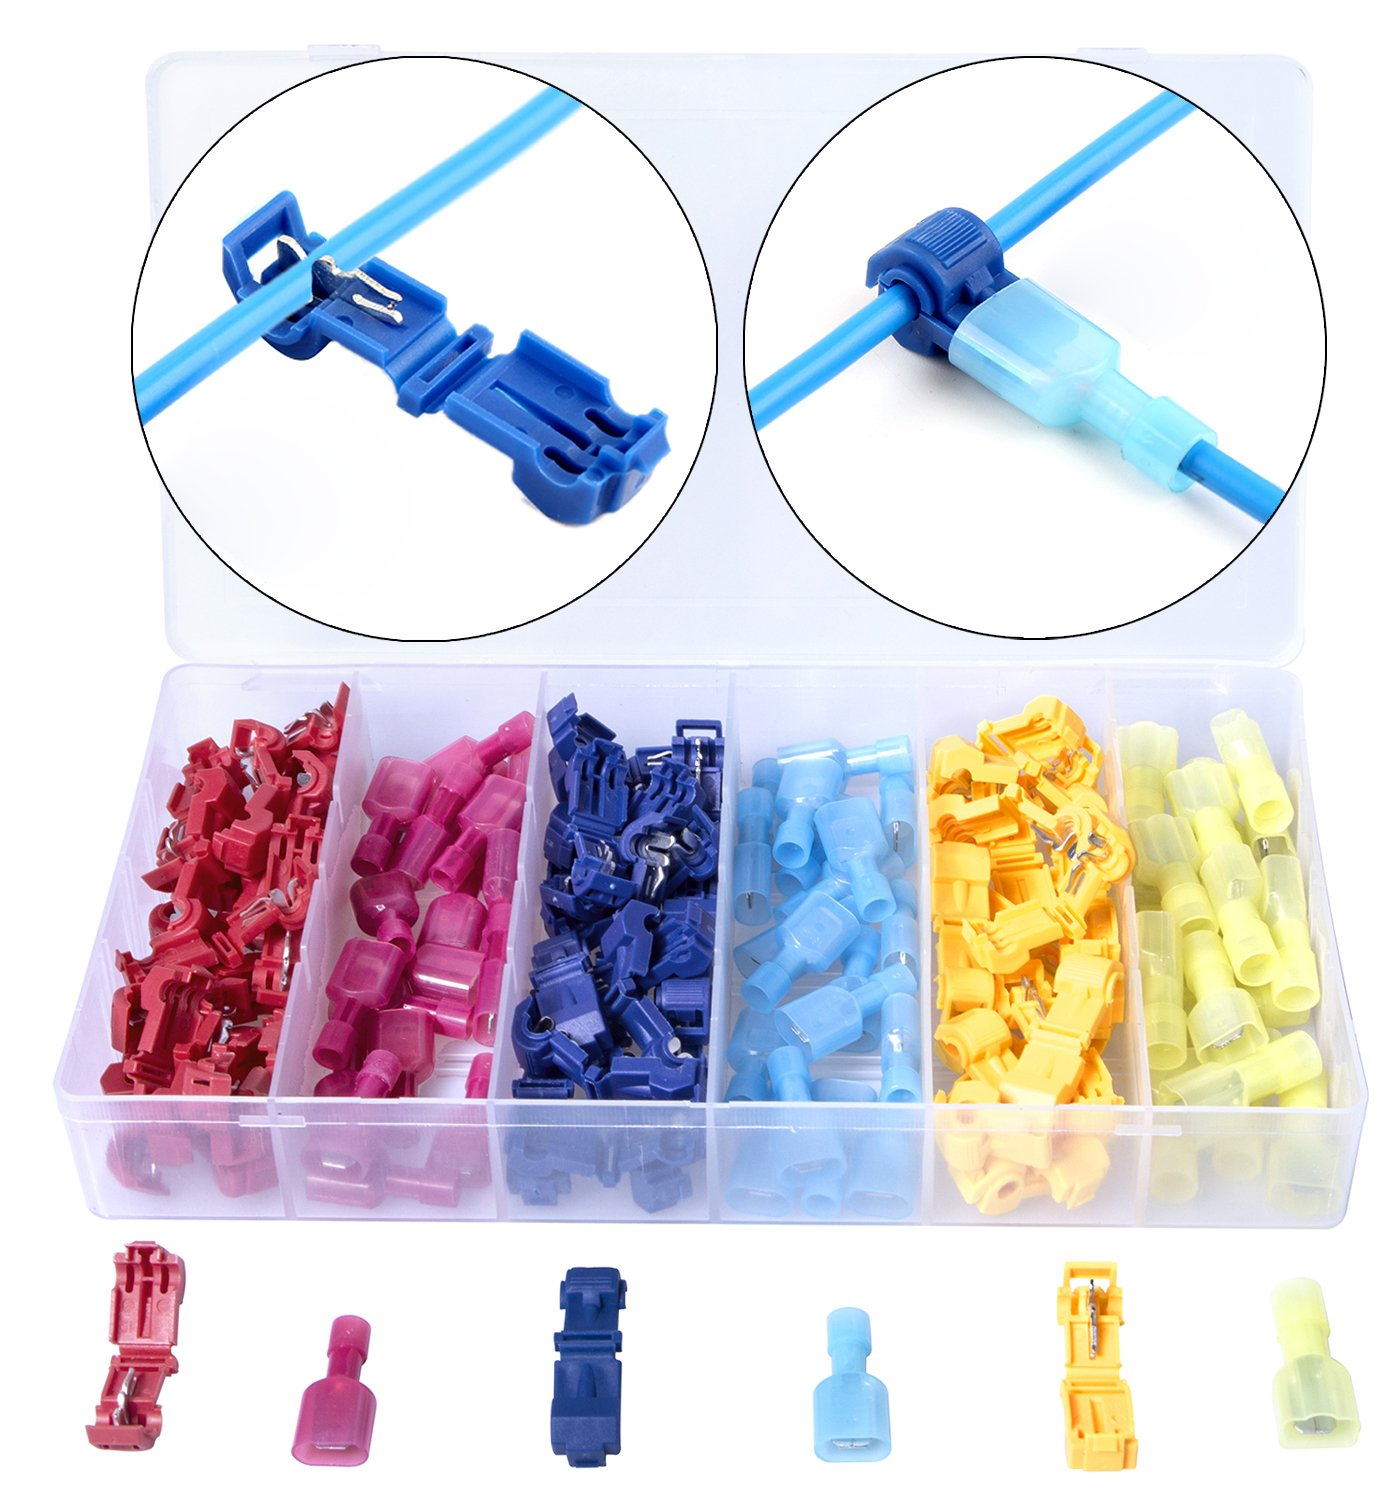 Besteek 120 Pcs/60 Pairs Wire Terminals T-Tap Electrical Crimp Connectors Quick Splice Spade Connectors with Nylon Fully Insulated